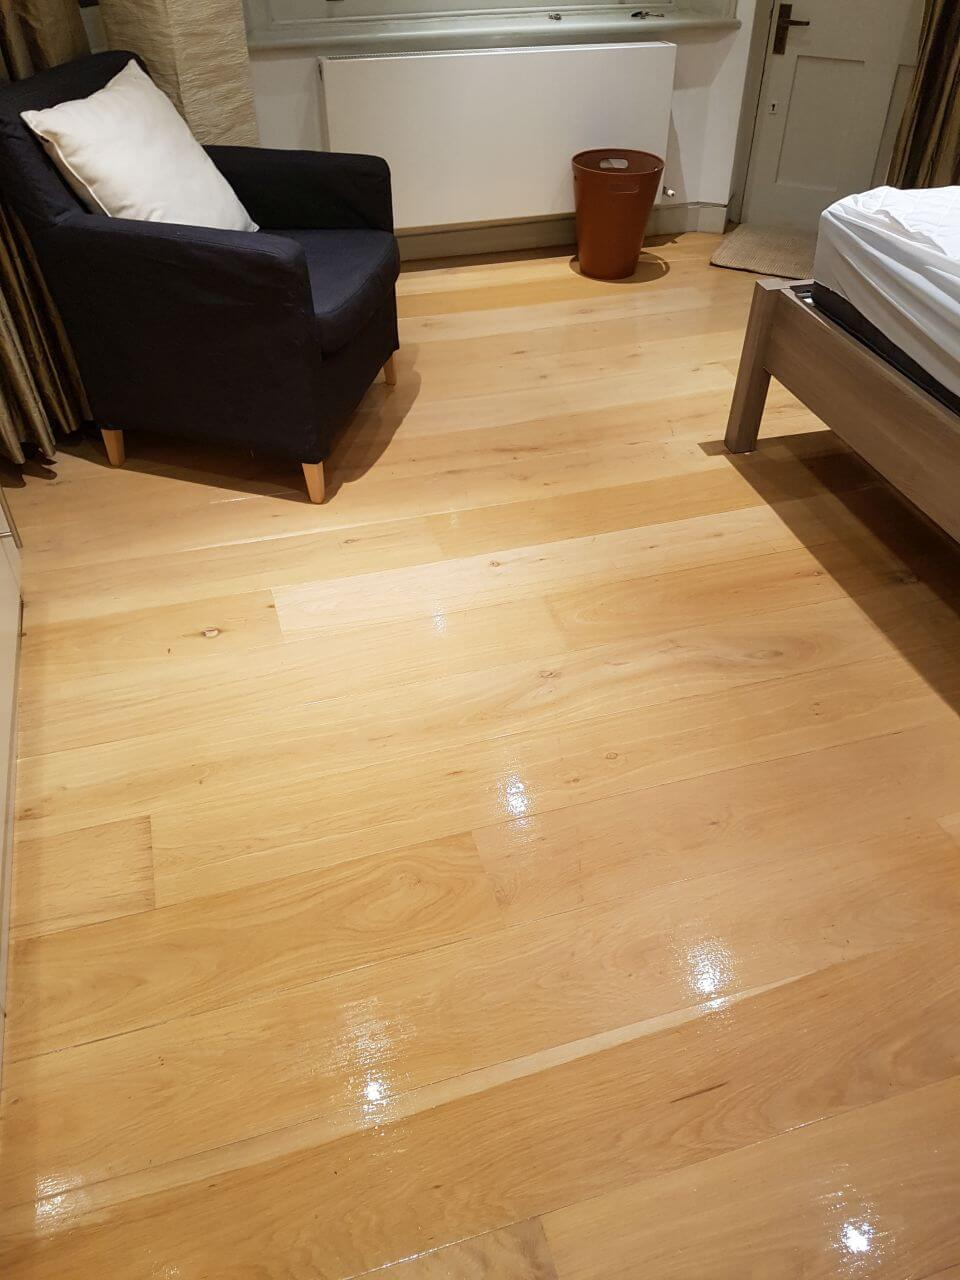 NW8 carpet cleaning Lisson Grove